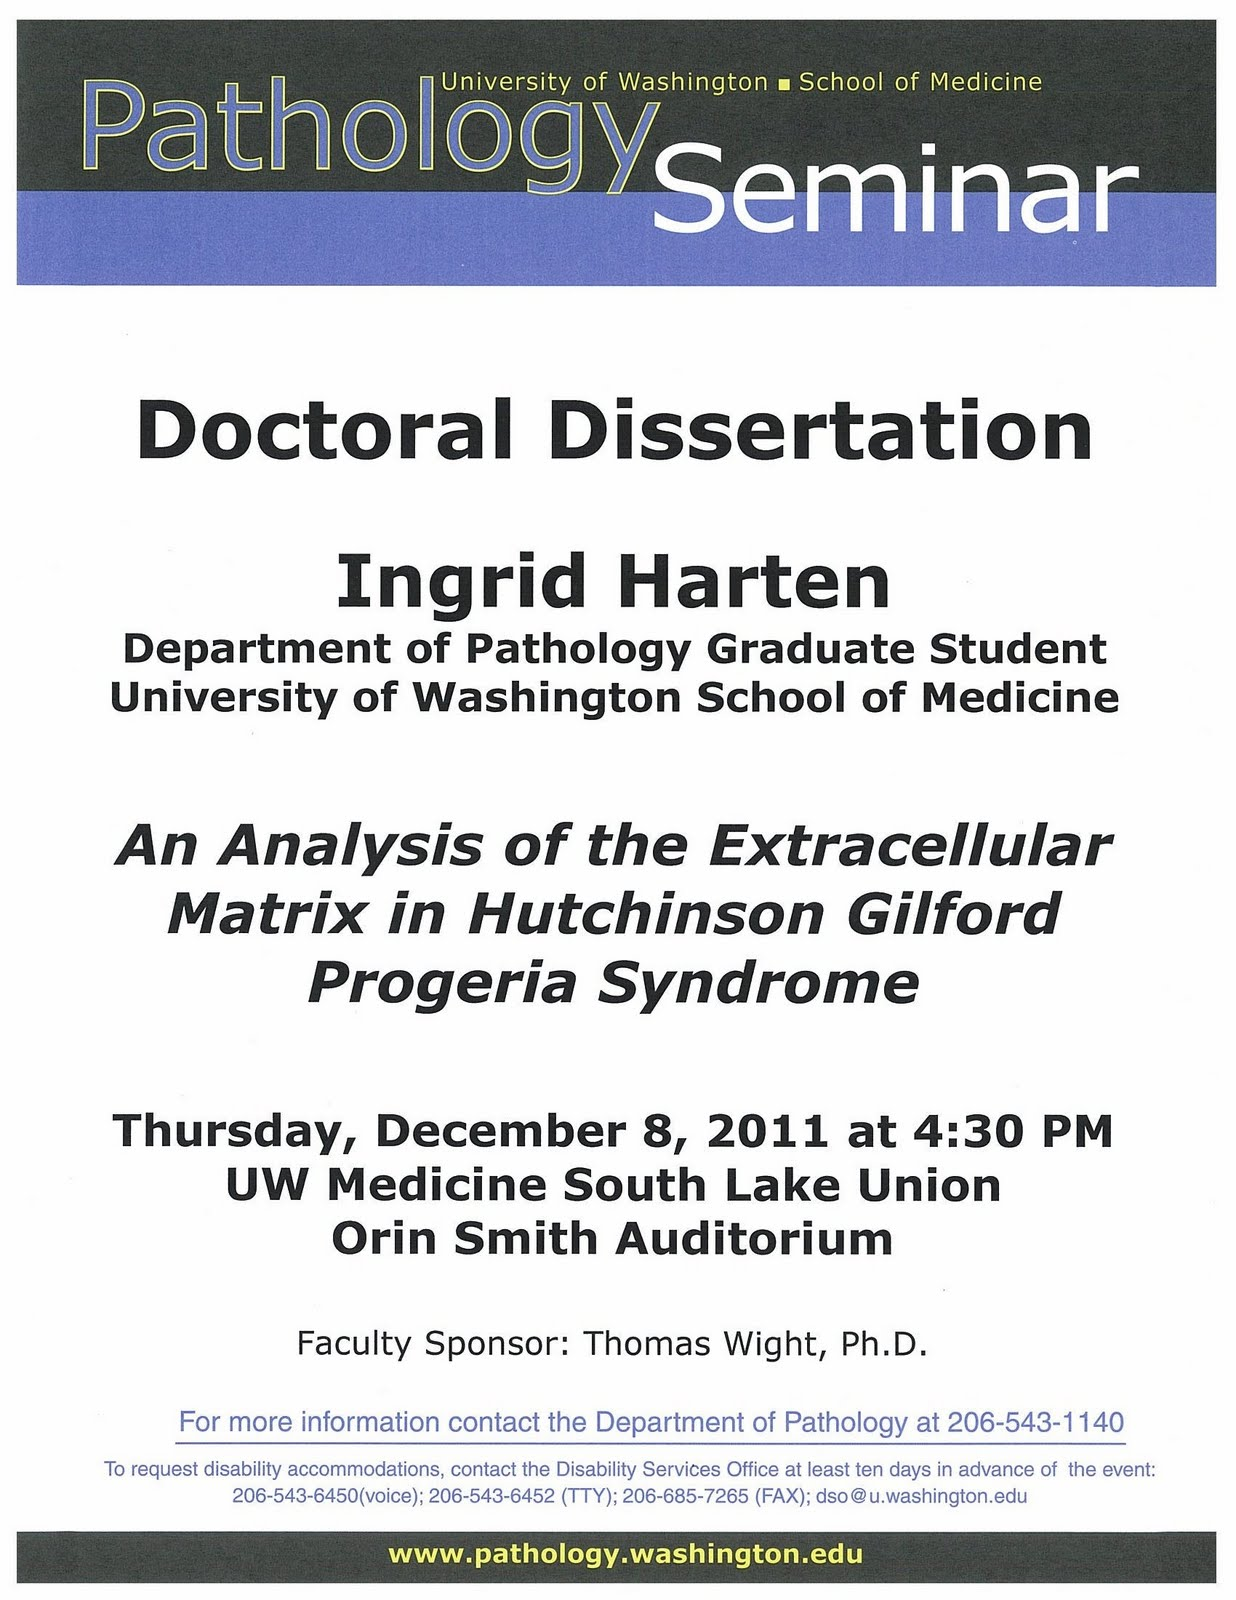 Doctoral dissertation assistance 2014